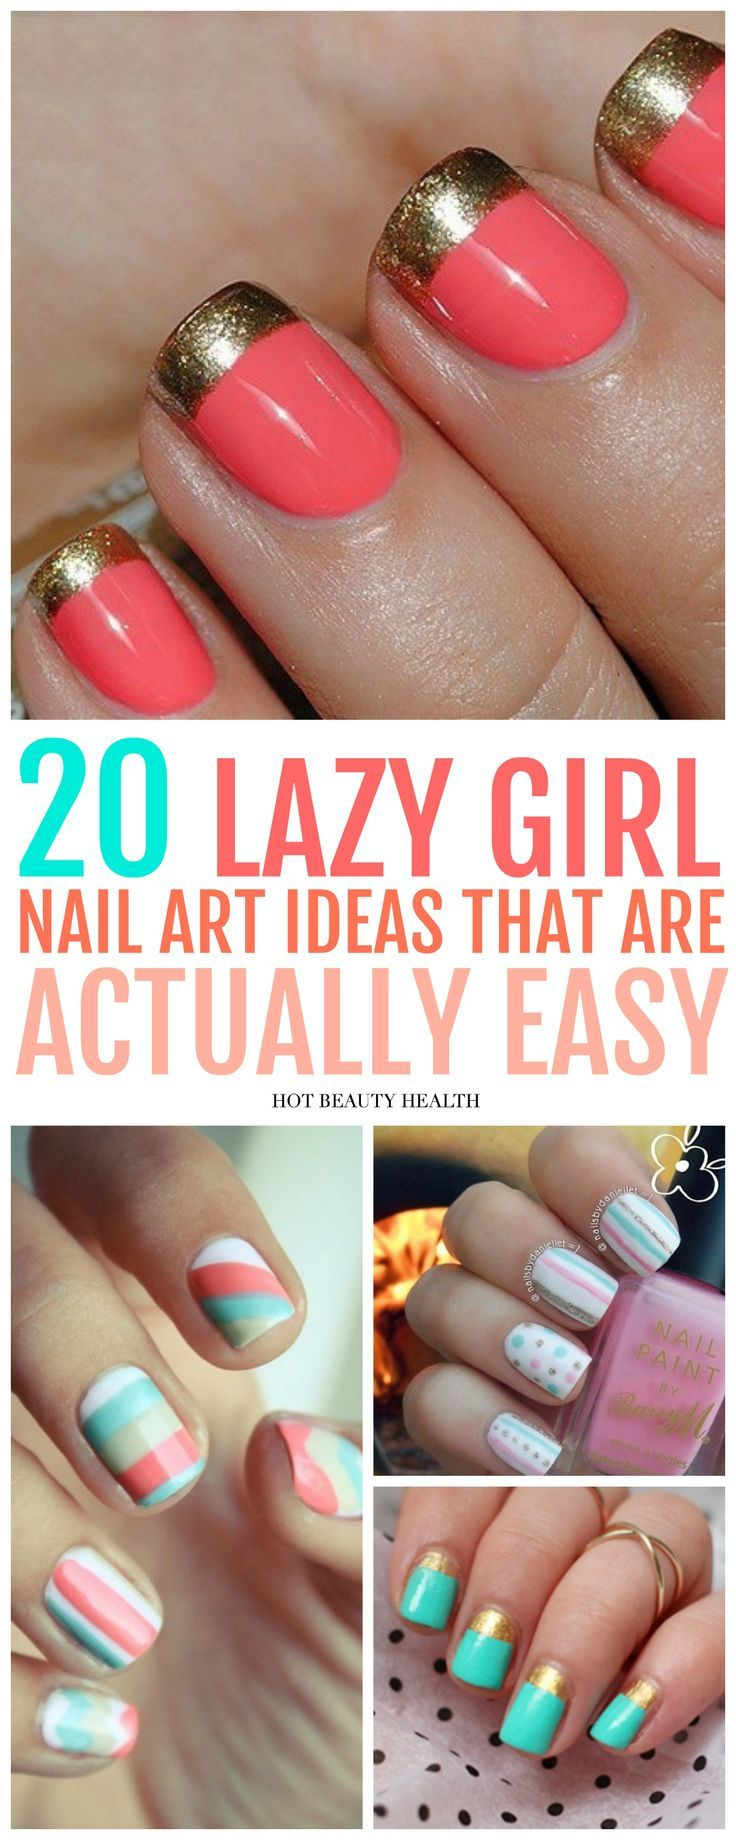 20 Lazy Girl Nail Art Ideas That Are Actually Easy Nails